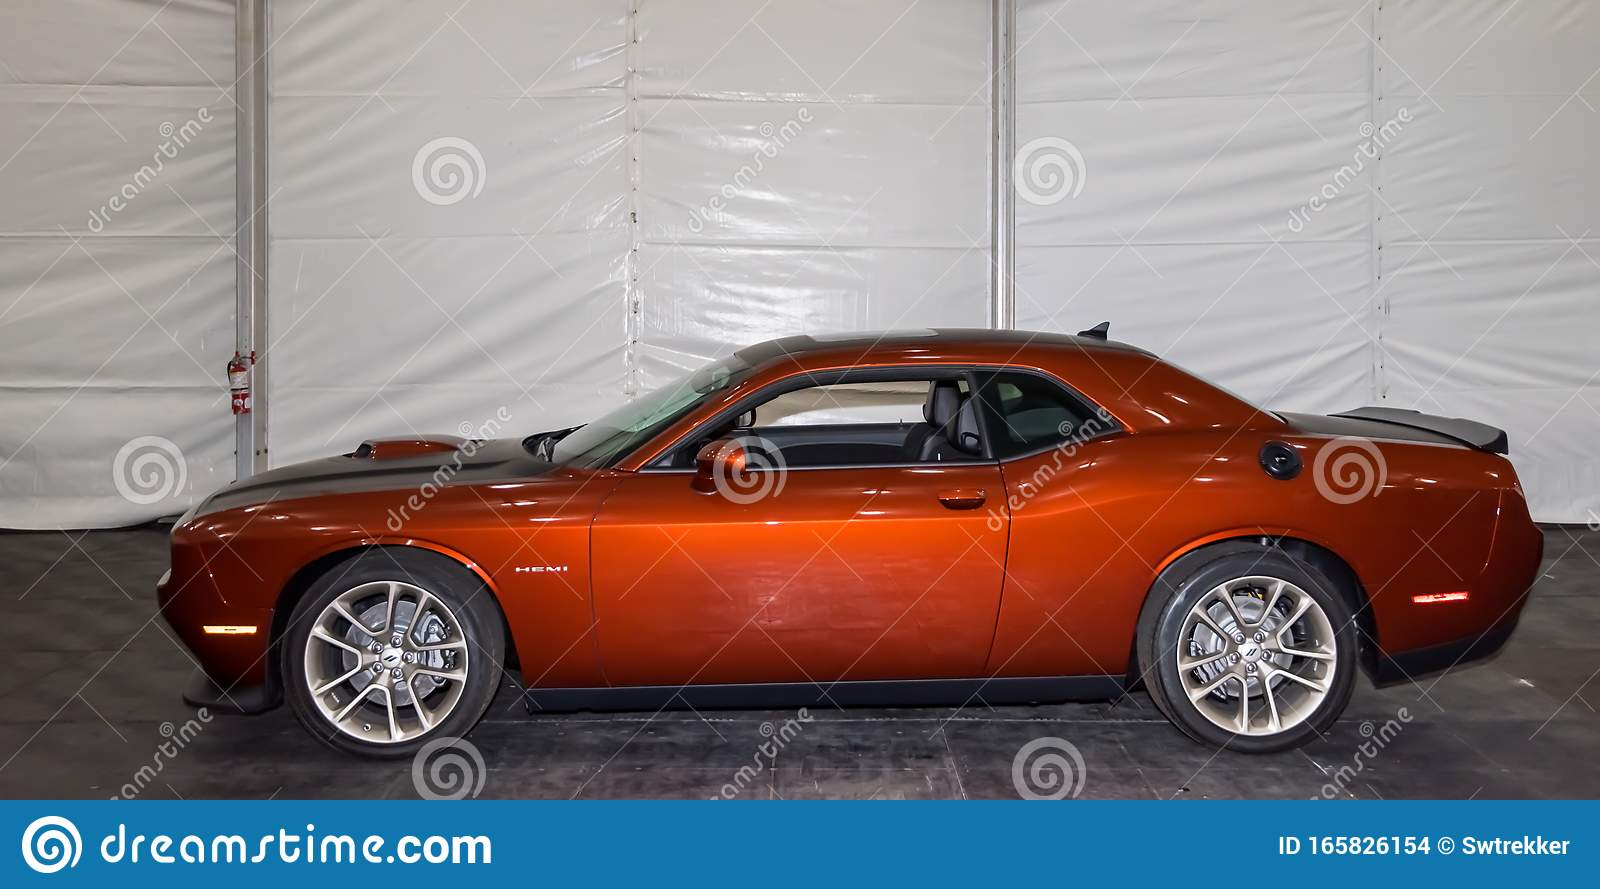 2020 Dodge Challenger 50th Anniversary Edition Editorial Stock Image Image Of Aerodynamic Muscle 165826154